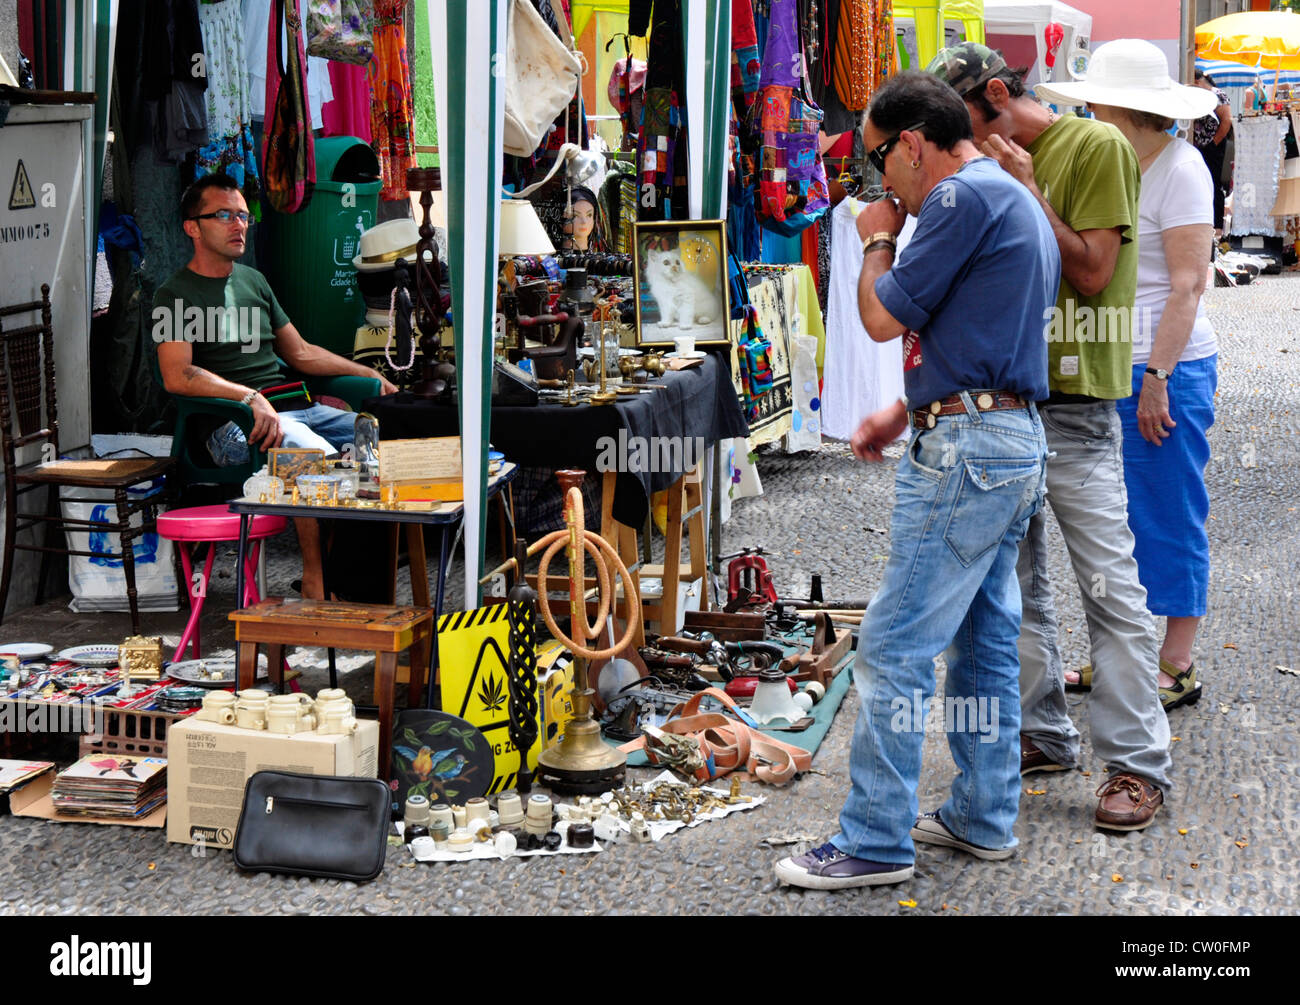 Portugal - Madeira - Funchal Zona velha - stall in street market - buyers contemplating a possible purchase - Stock Image